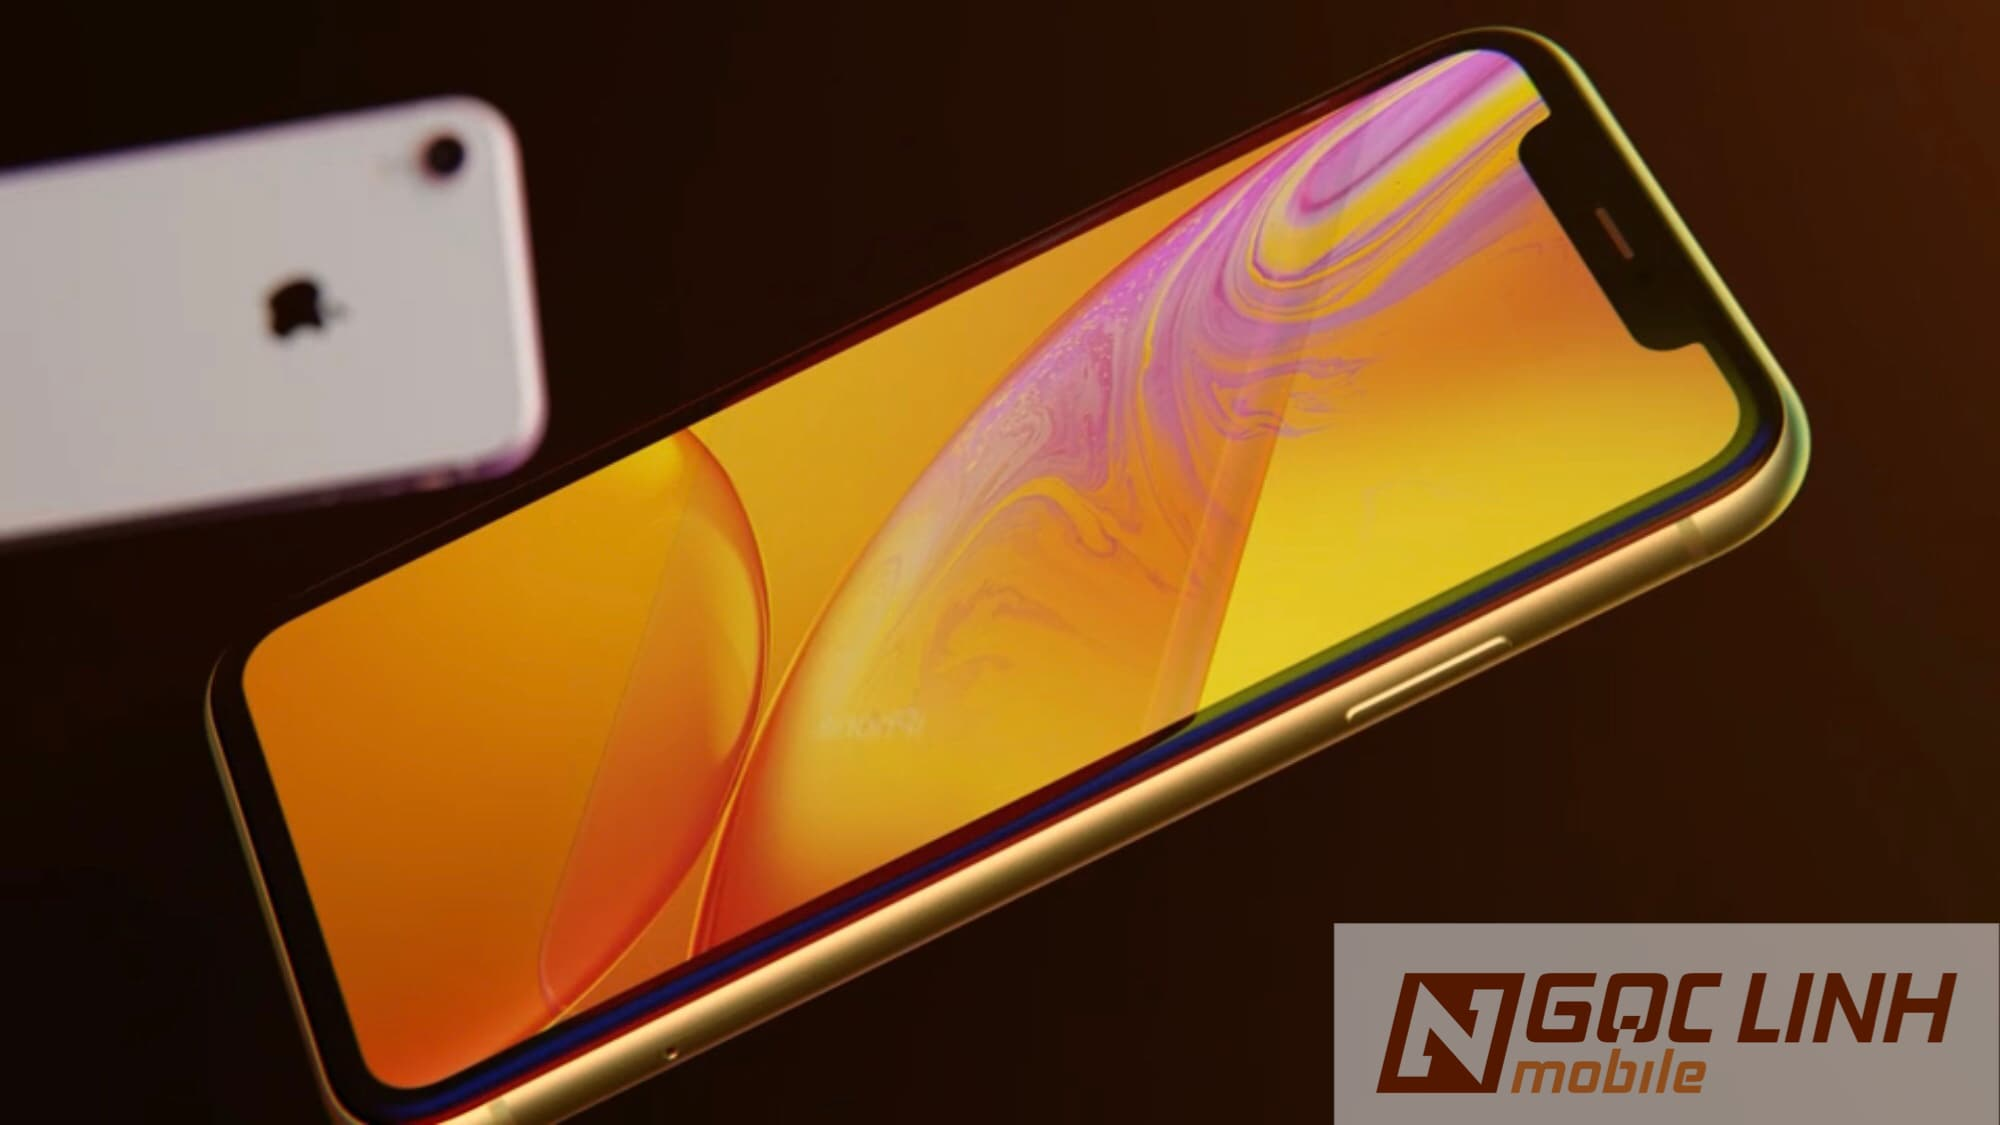 pin iPhone Xs Max, iPhone Xr 64GB  - iPhone Xr 64GB 100%